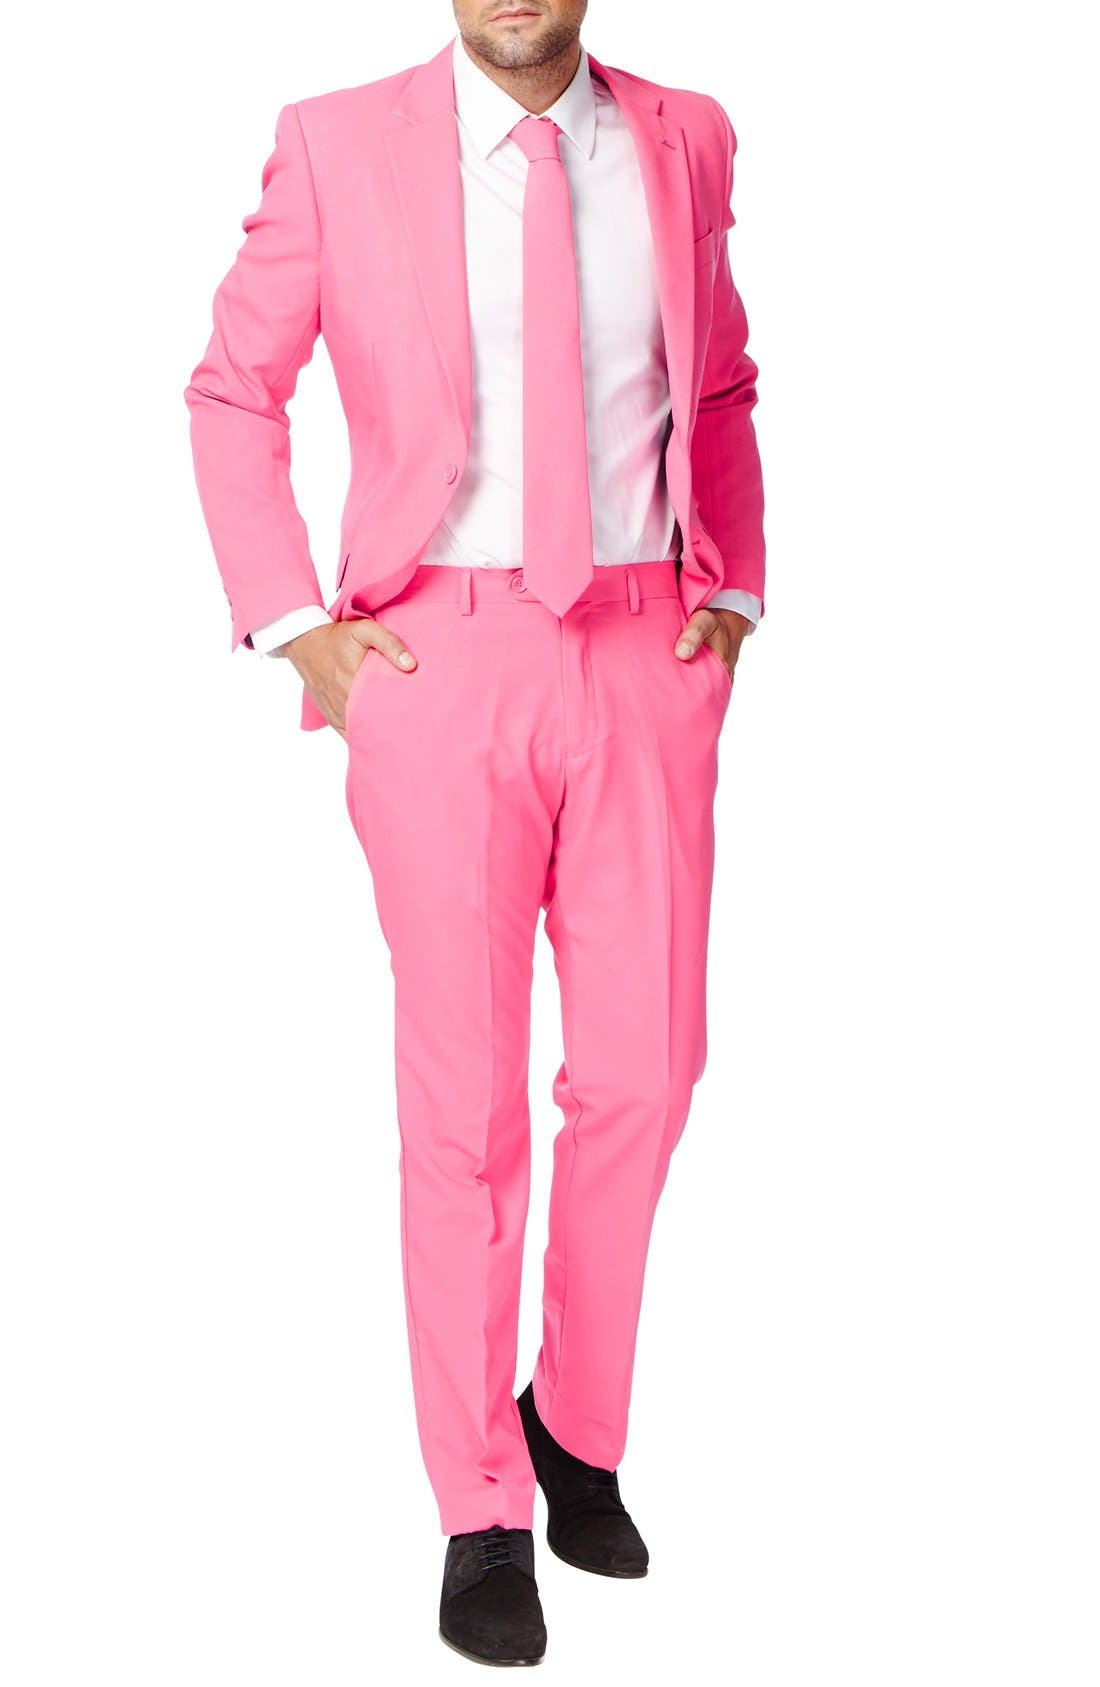 Alternate Image 1 Selected - OppoSuits 'Mr. Pink' Trim Fit Two-Piece Suit with Tie